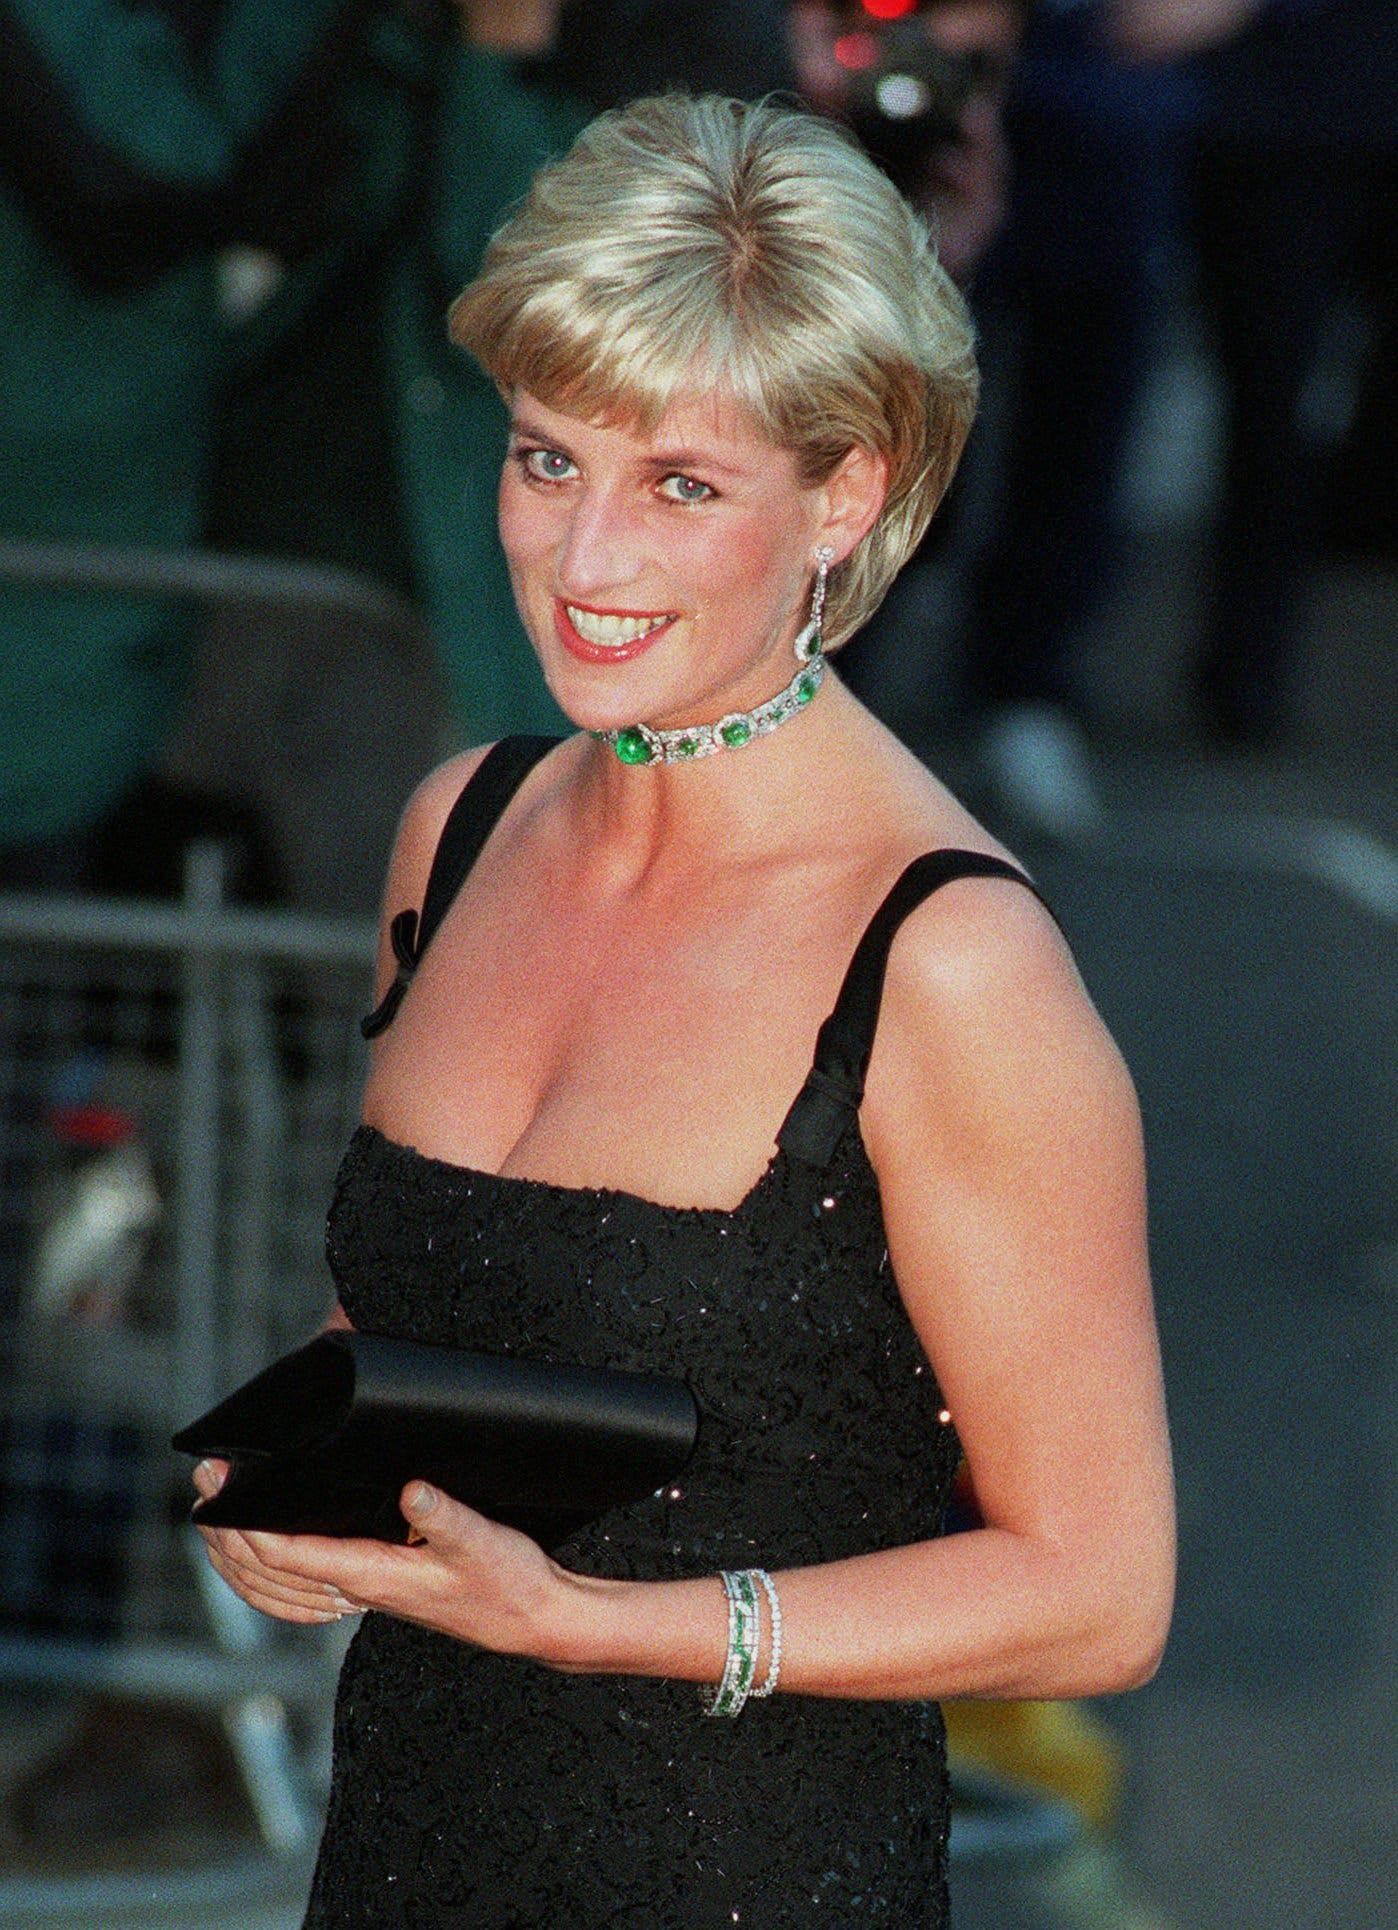 Princess Diana, smiles as she arrives at the Tate Gallery in London Tuesday July 1, 1997 for the Centenary Gala honoring the world famous museum.  (AP)